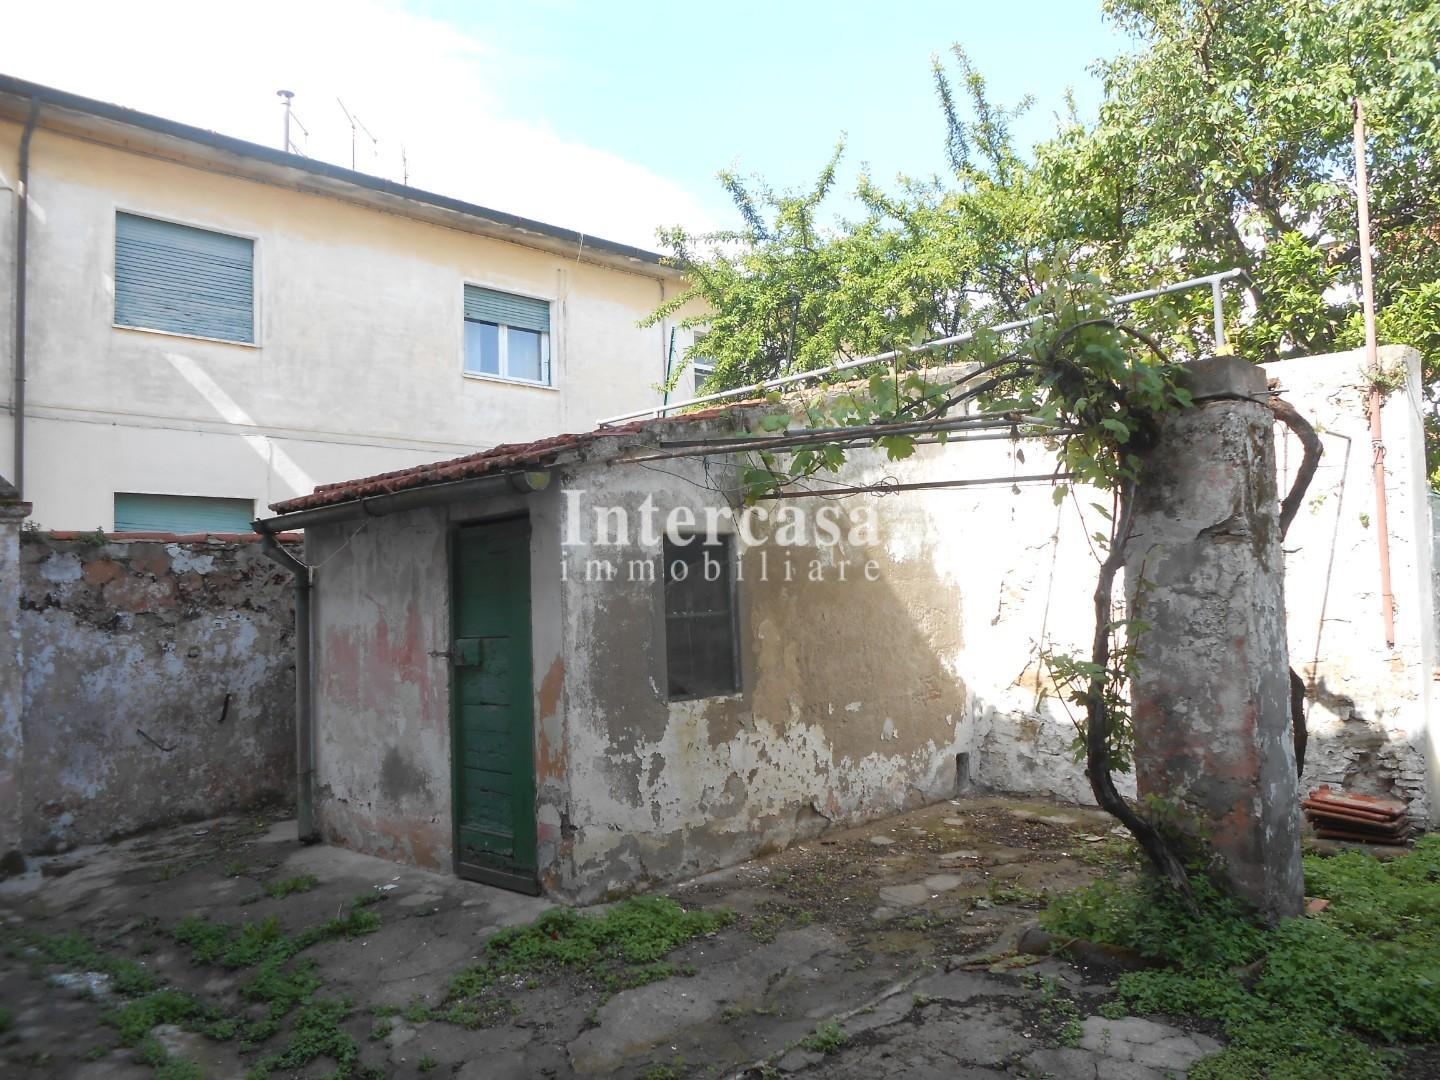 Townhouses for sale in Pisa